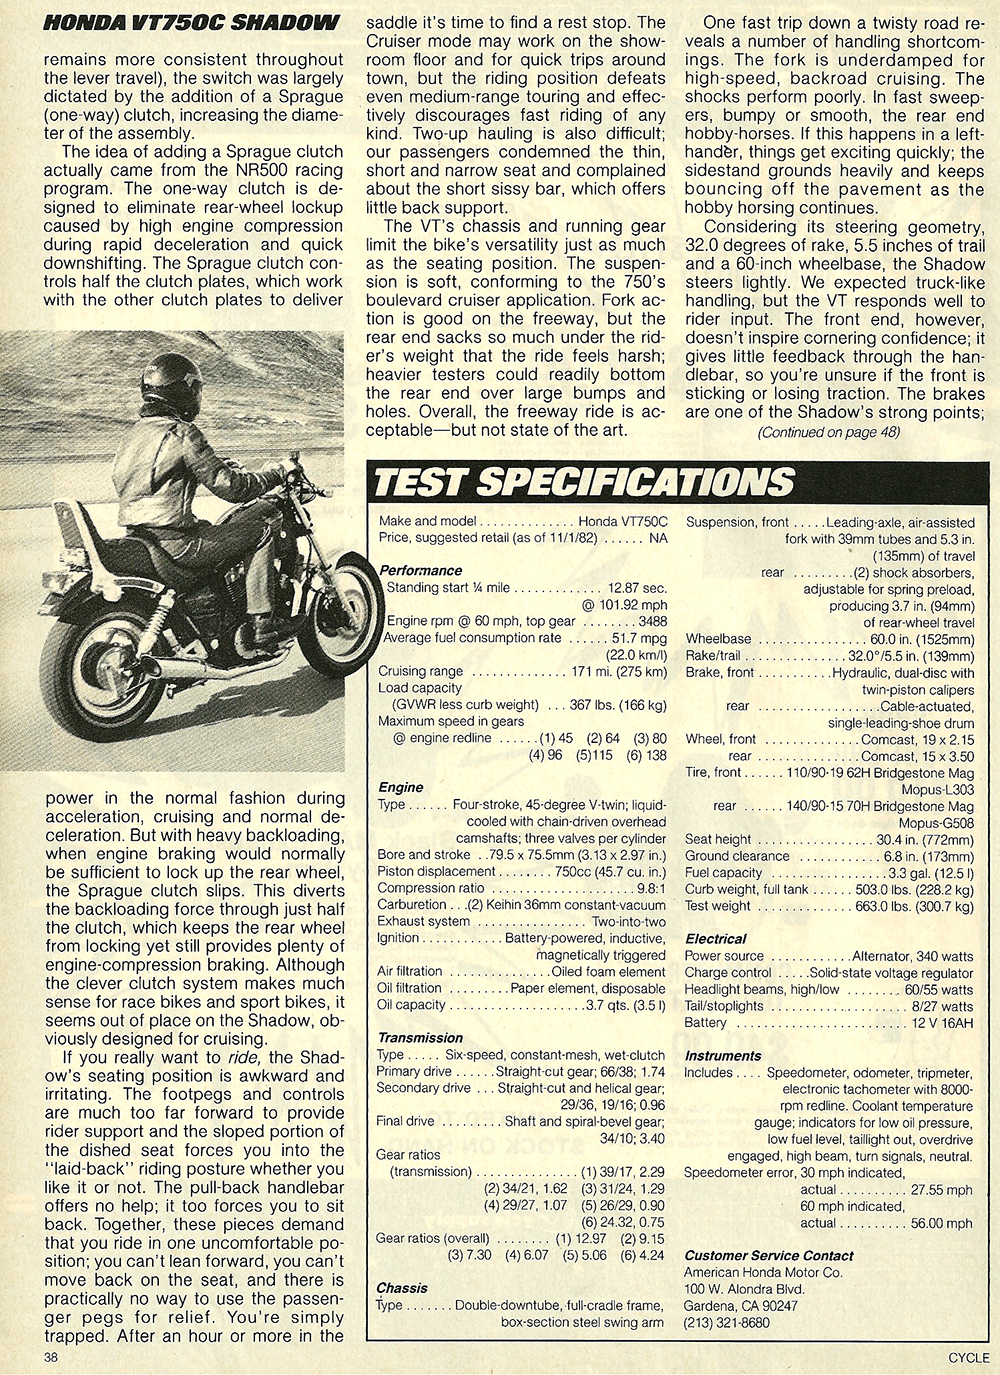 1983 Honda VT750C Shadow road test 8.jpg